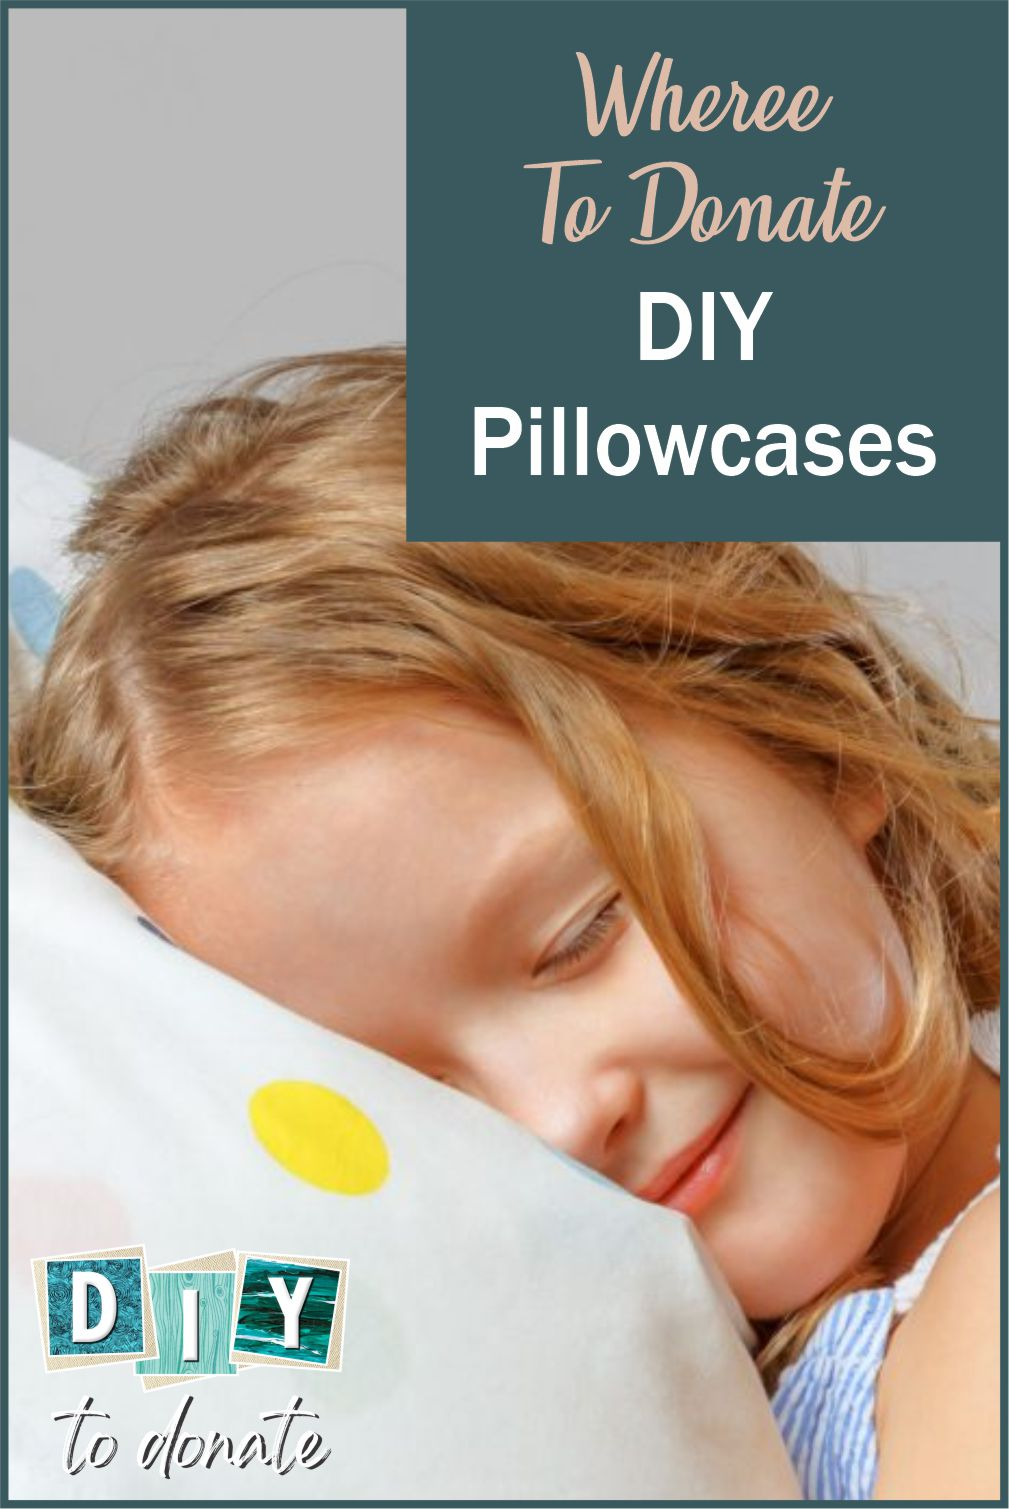 When you make and donate handmade pillowcases you are helping children during life changing situations. Find out where to donate them. #diytodonate #donate #diy #pillowcases #donatepillowcases #craftstodonate #donate #giveback #helpkids